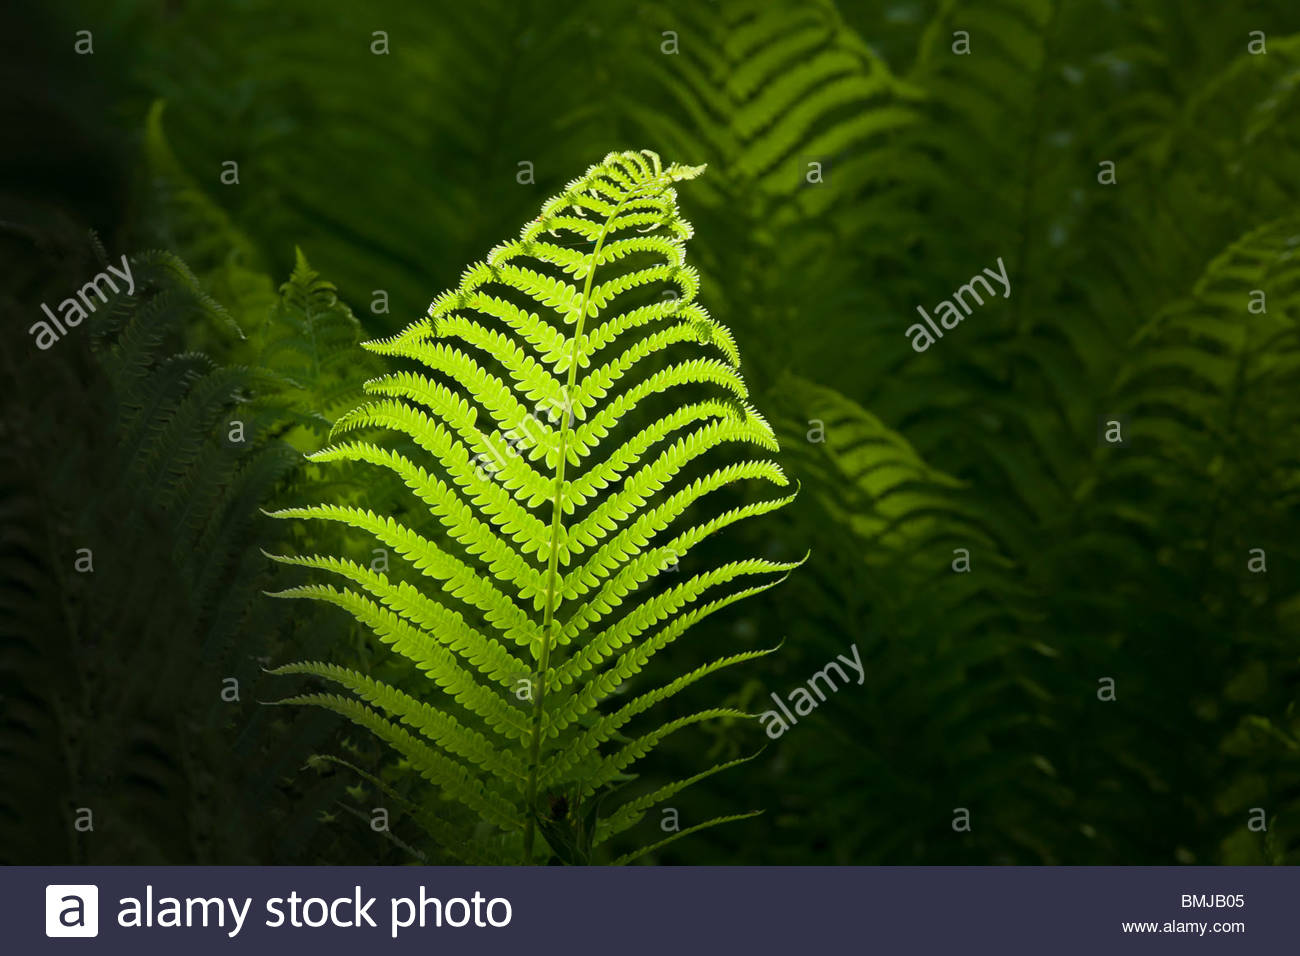 Fern in sunshine in Ontario Canada - Stock Image